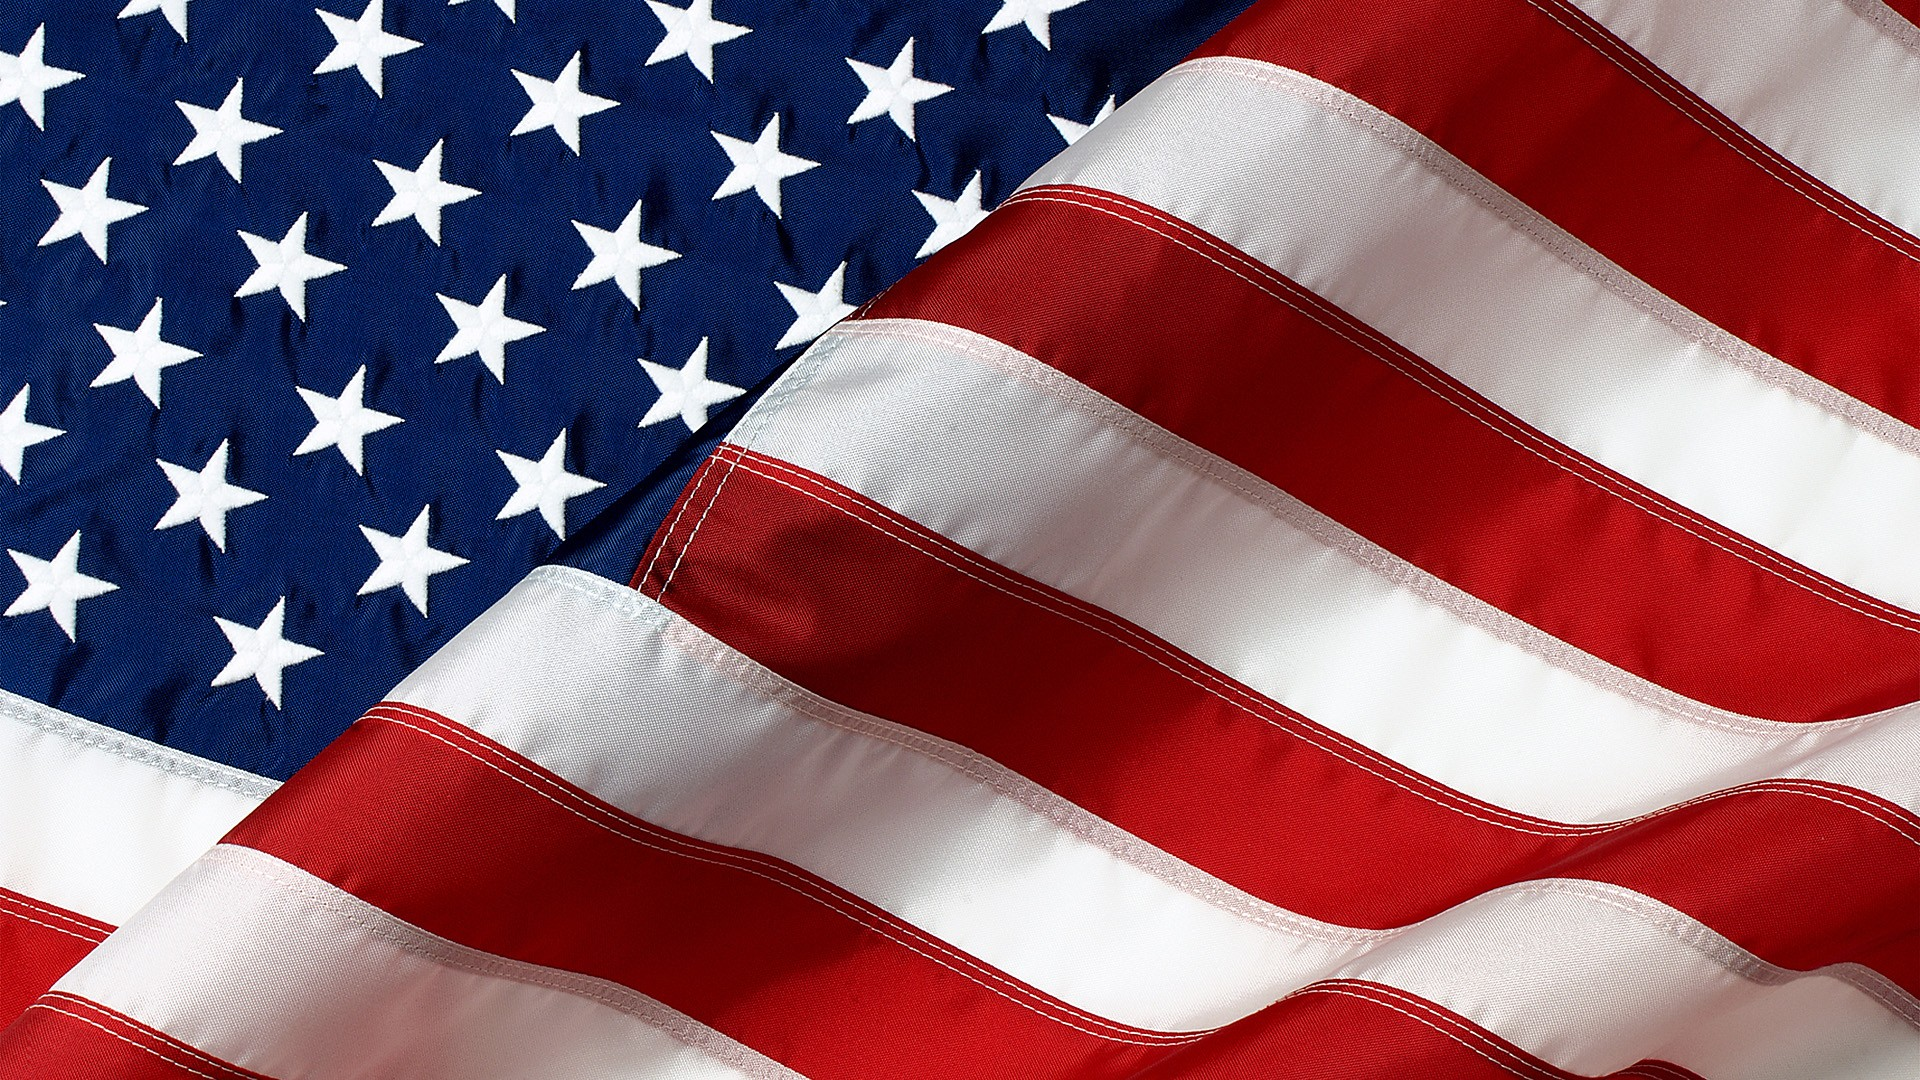 American Flag Wallpaper 1920x1080 American Flag 1920x1080